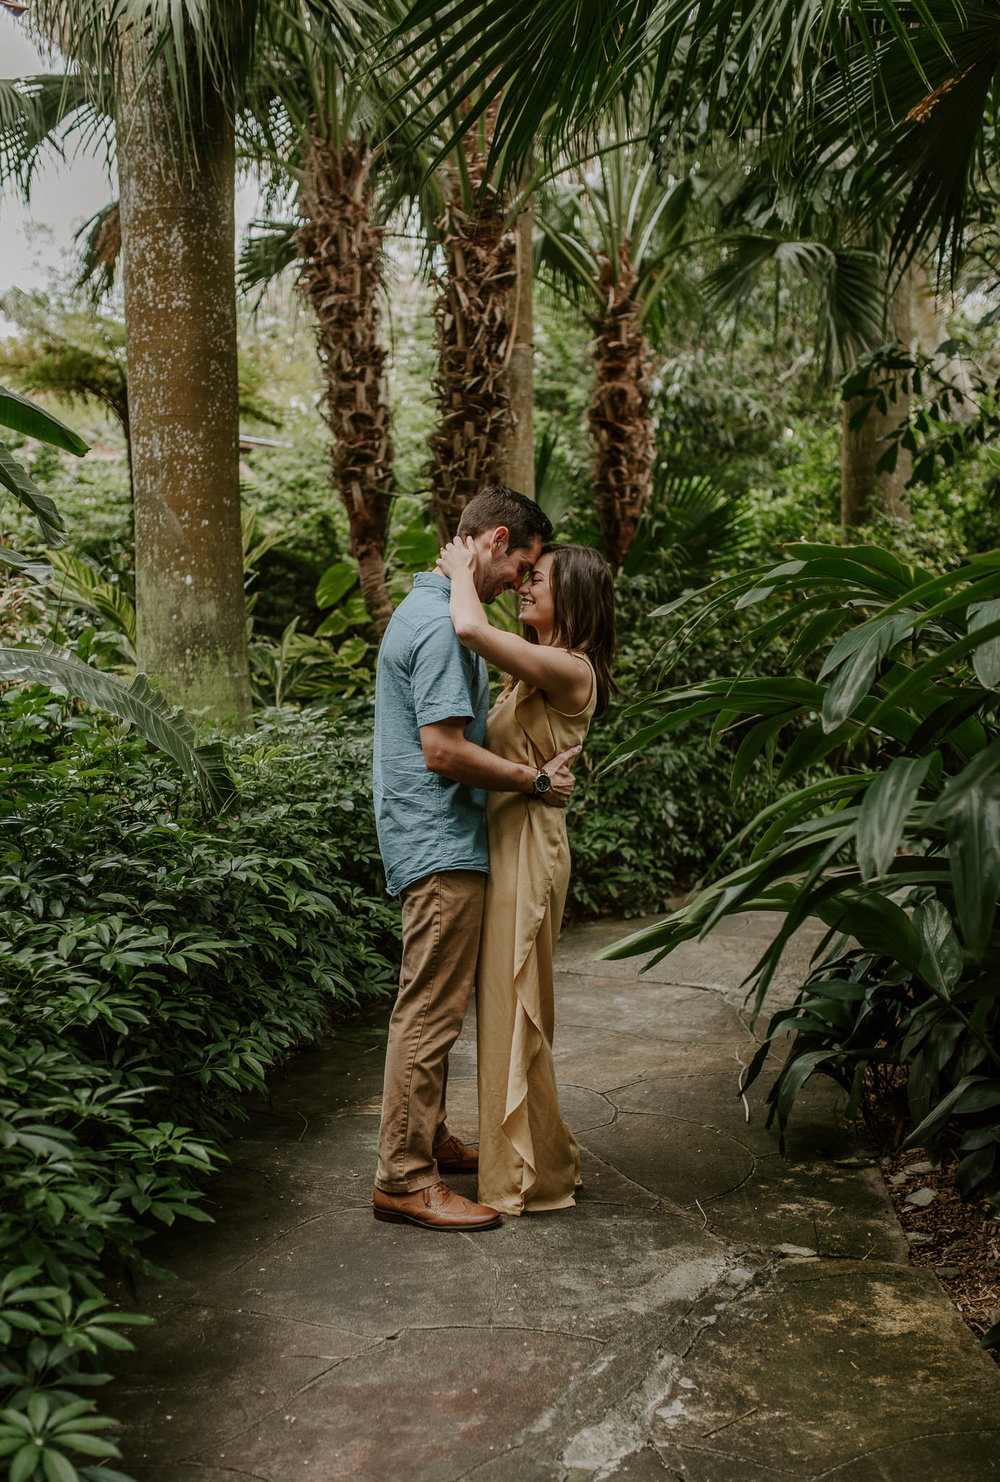 Tampa, Florida engagement session. Florida engagement session photographer at Sunken Gardens.